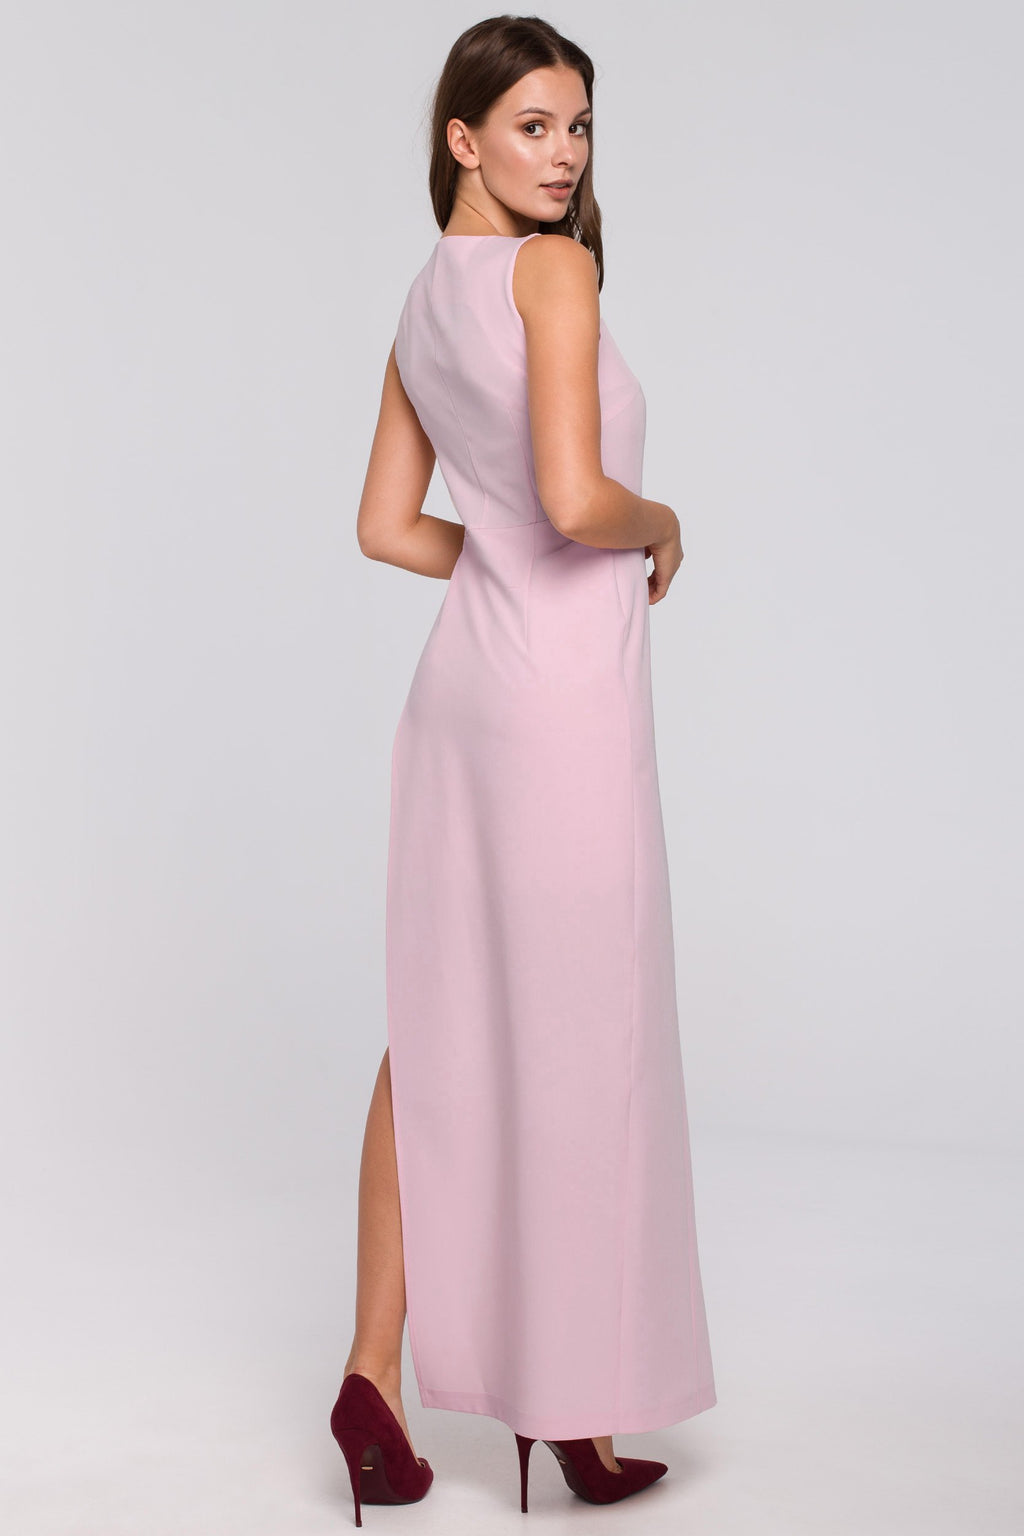 Powder Pink Maxi Asymmetric Cut Dress - So Chic Boutique